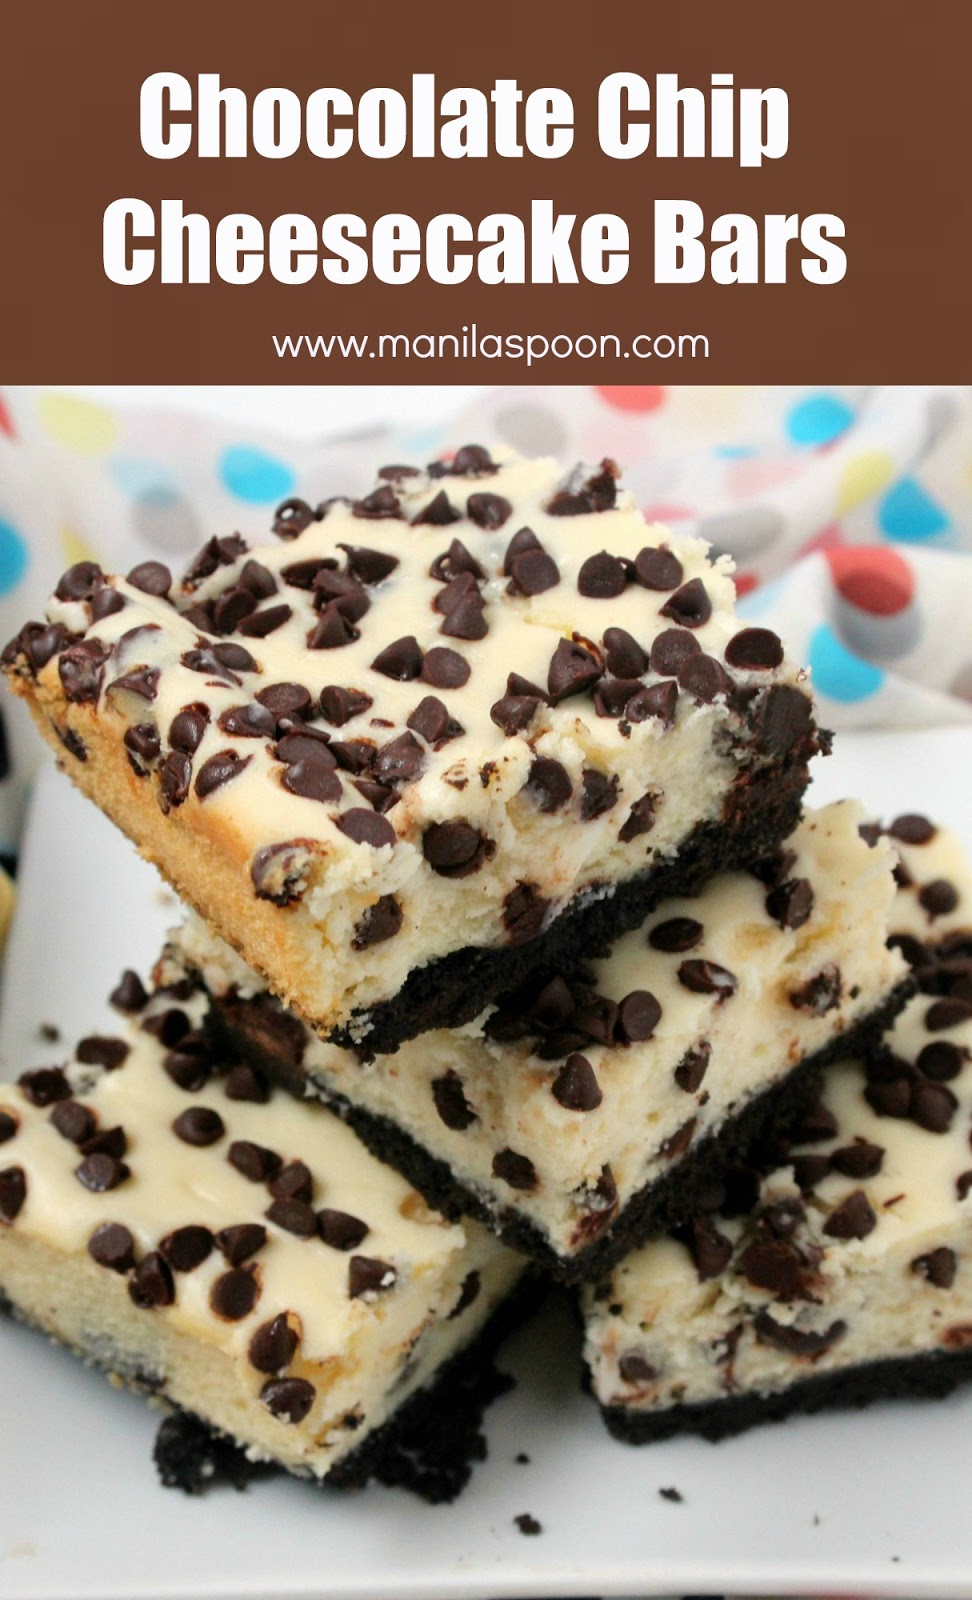 Craving chocolate and cheesecake? These delicious choco chip cheesecake bars are the solution! Easy recipe that you will make again and again. | manilaspoon.com